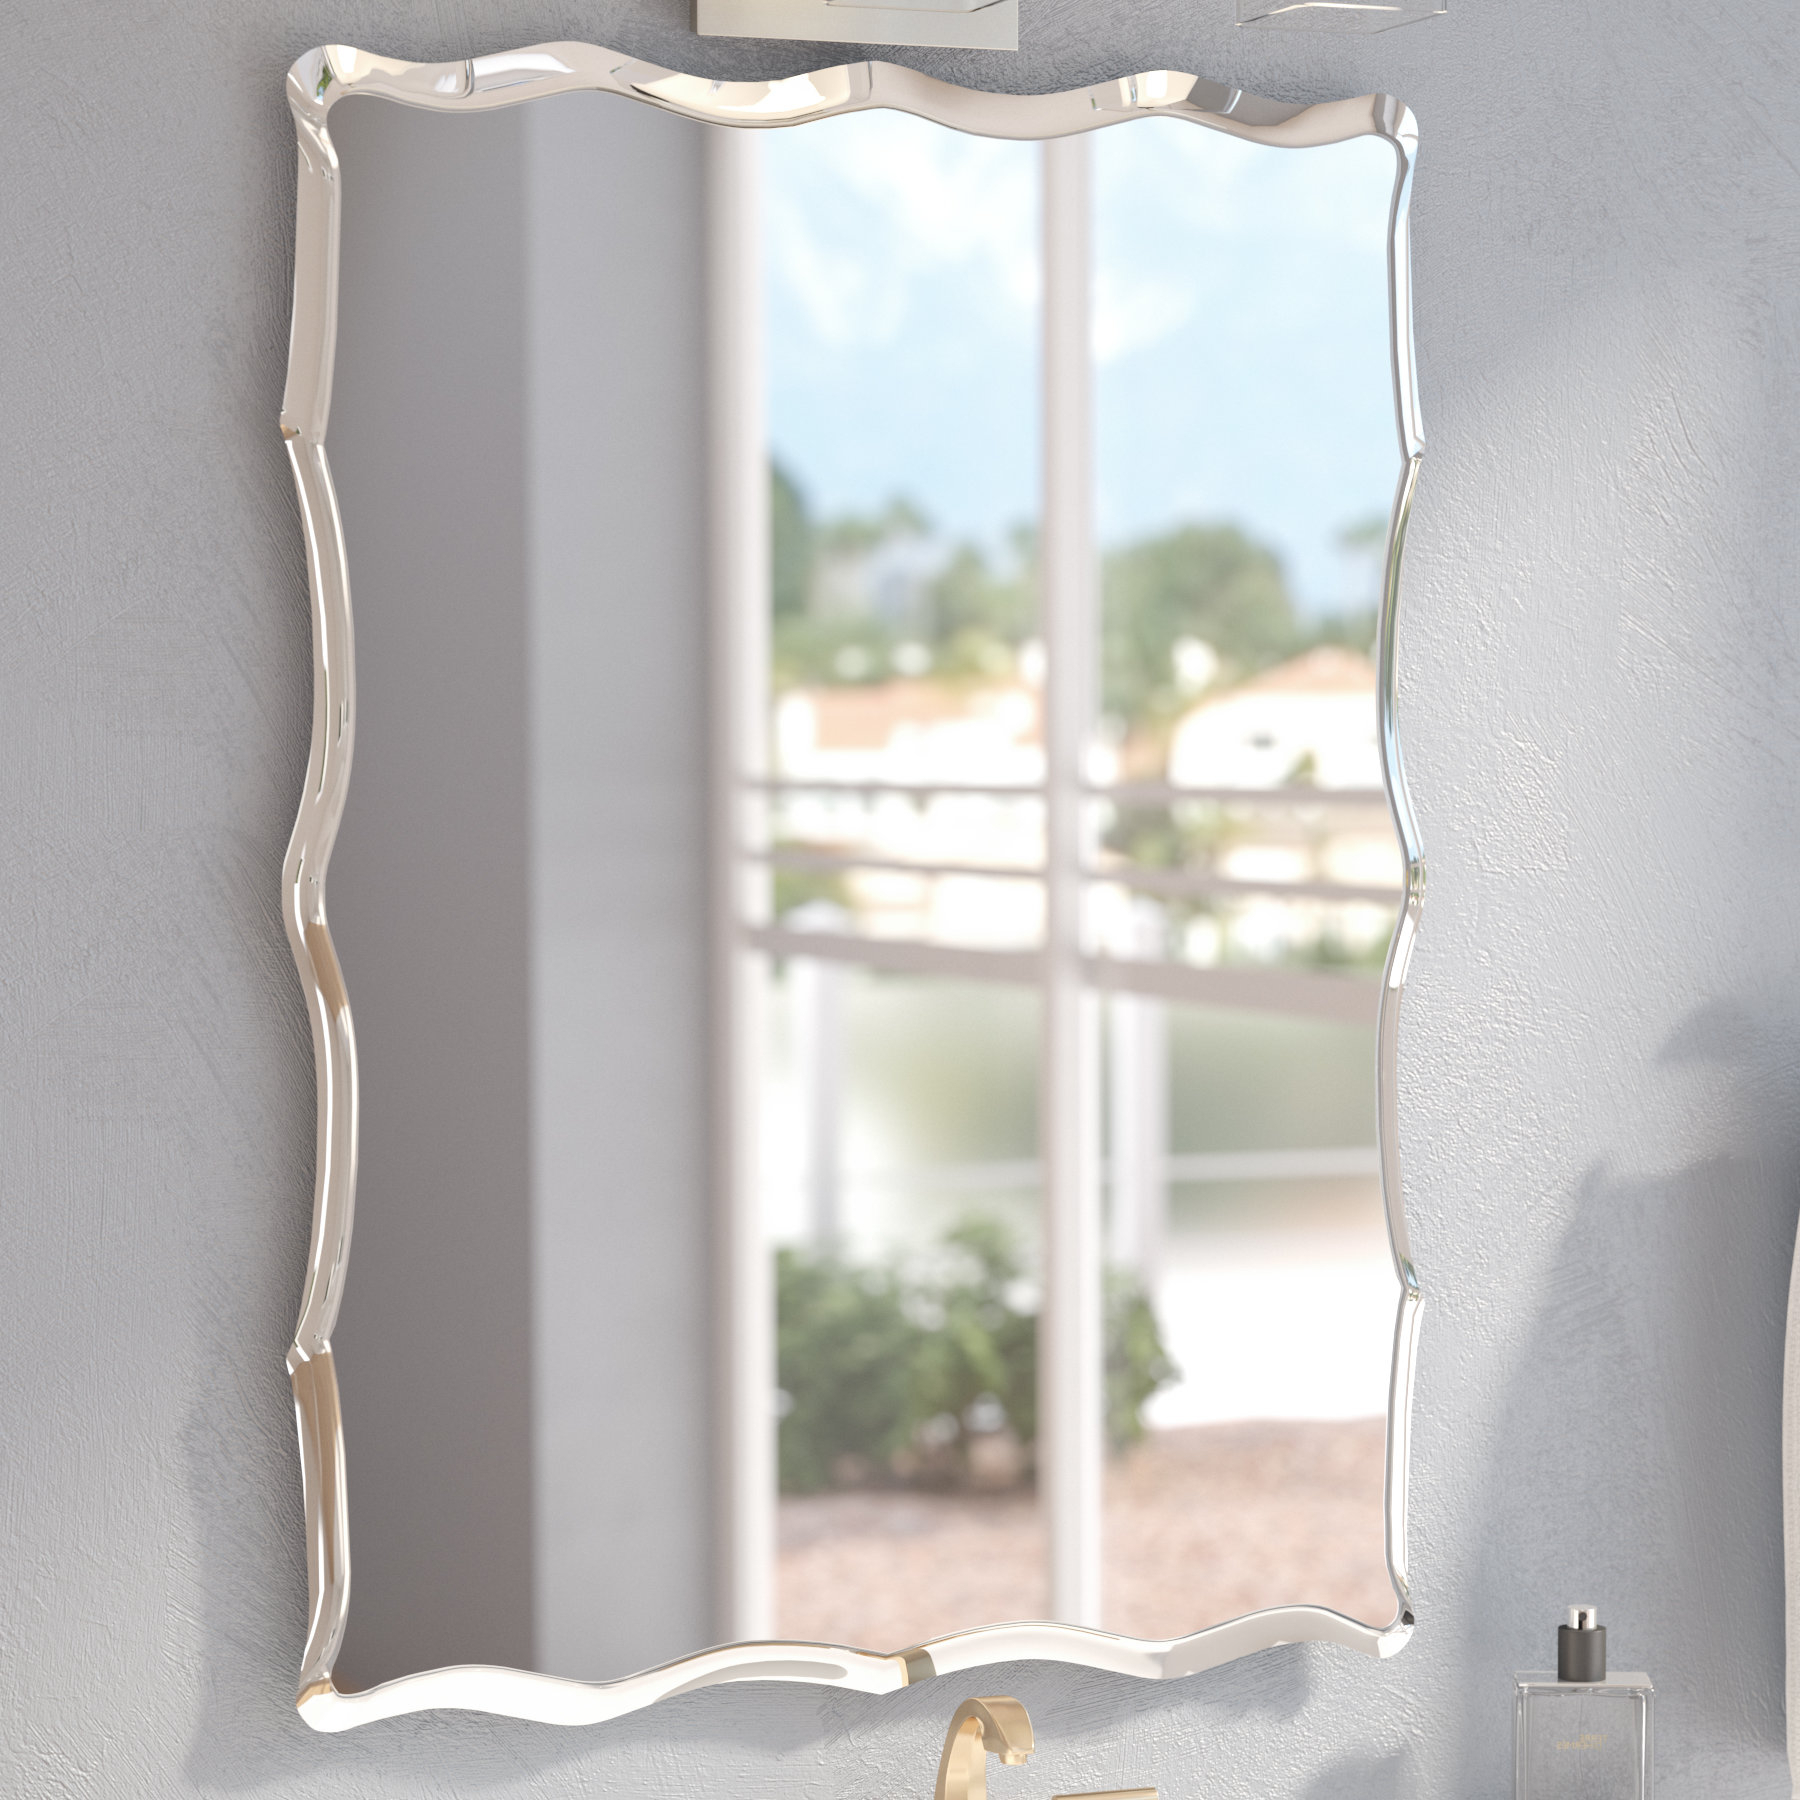 Pennsburg Rectangle Wall Mirrors Intended For Latest Wall Mirror With Crystals (View 12 of 20)